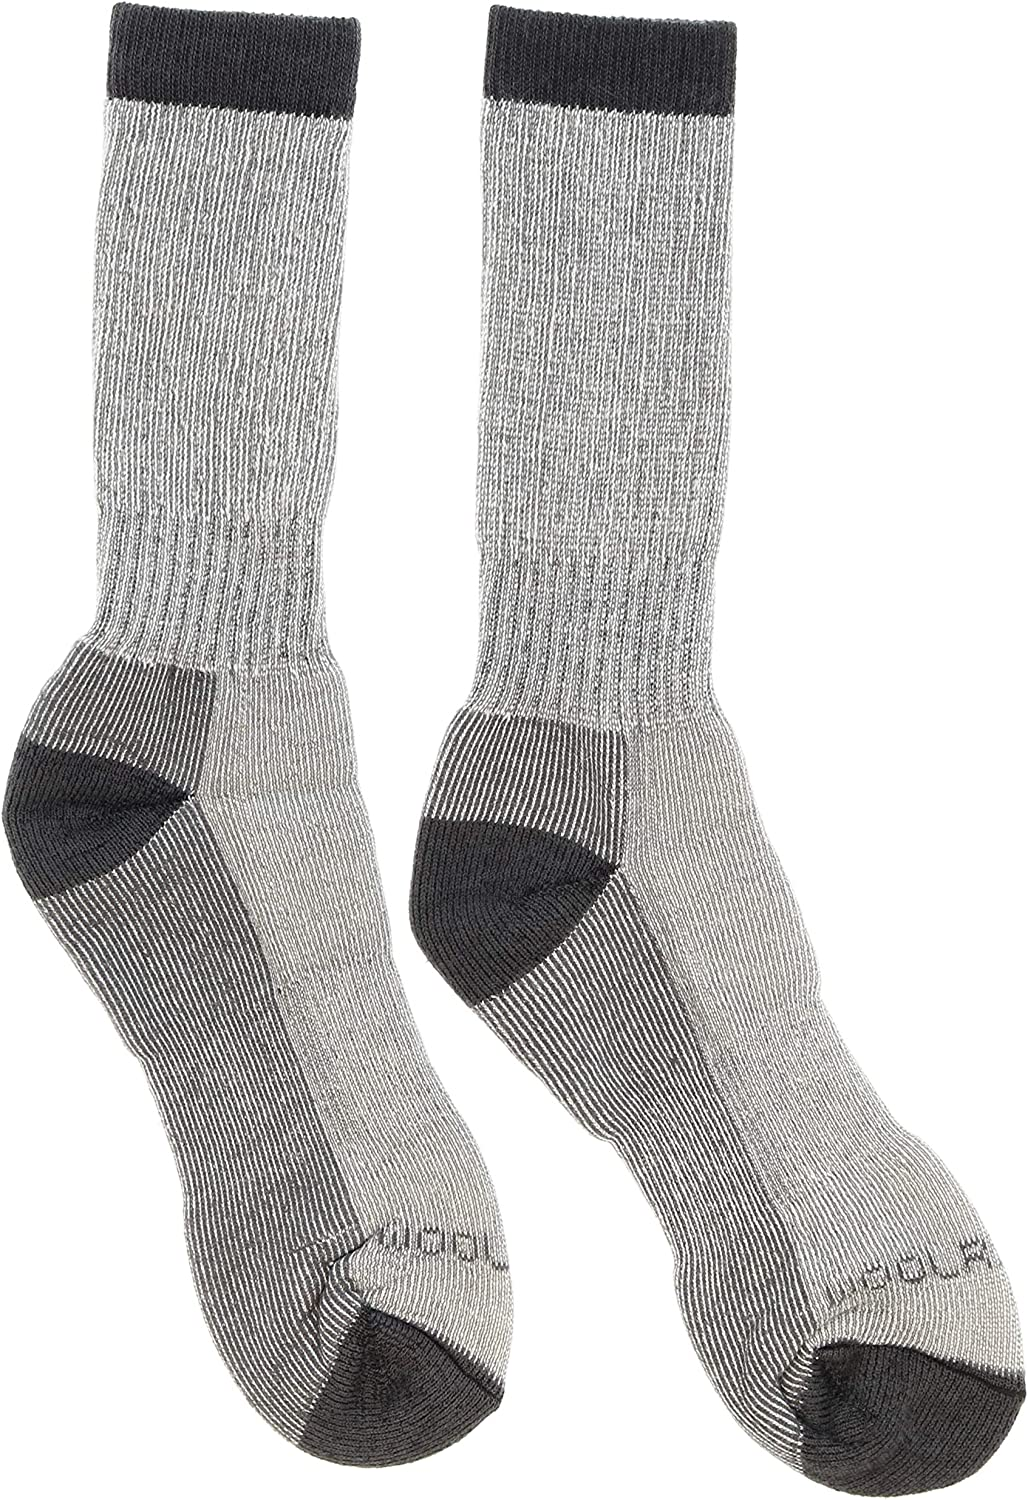 Woolrich Traditional Heavyweight Hiker WOOL BLEND Socks - 2-Pack, Crew (For Men) LARGE